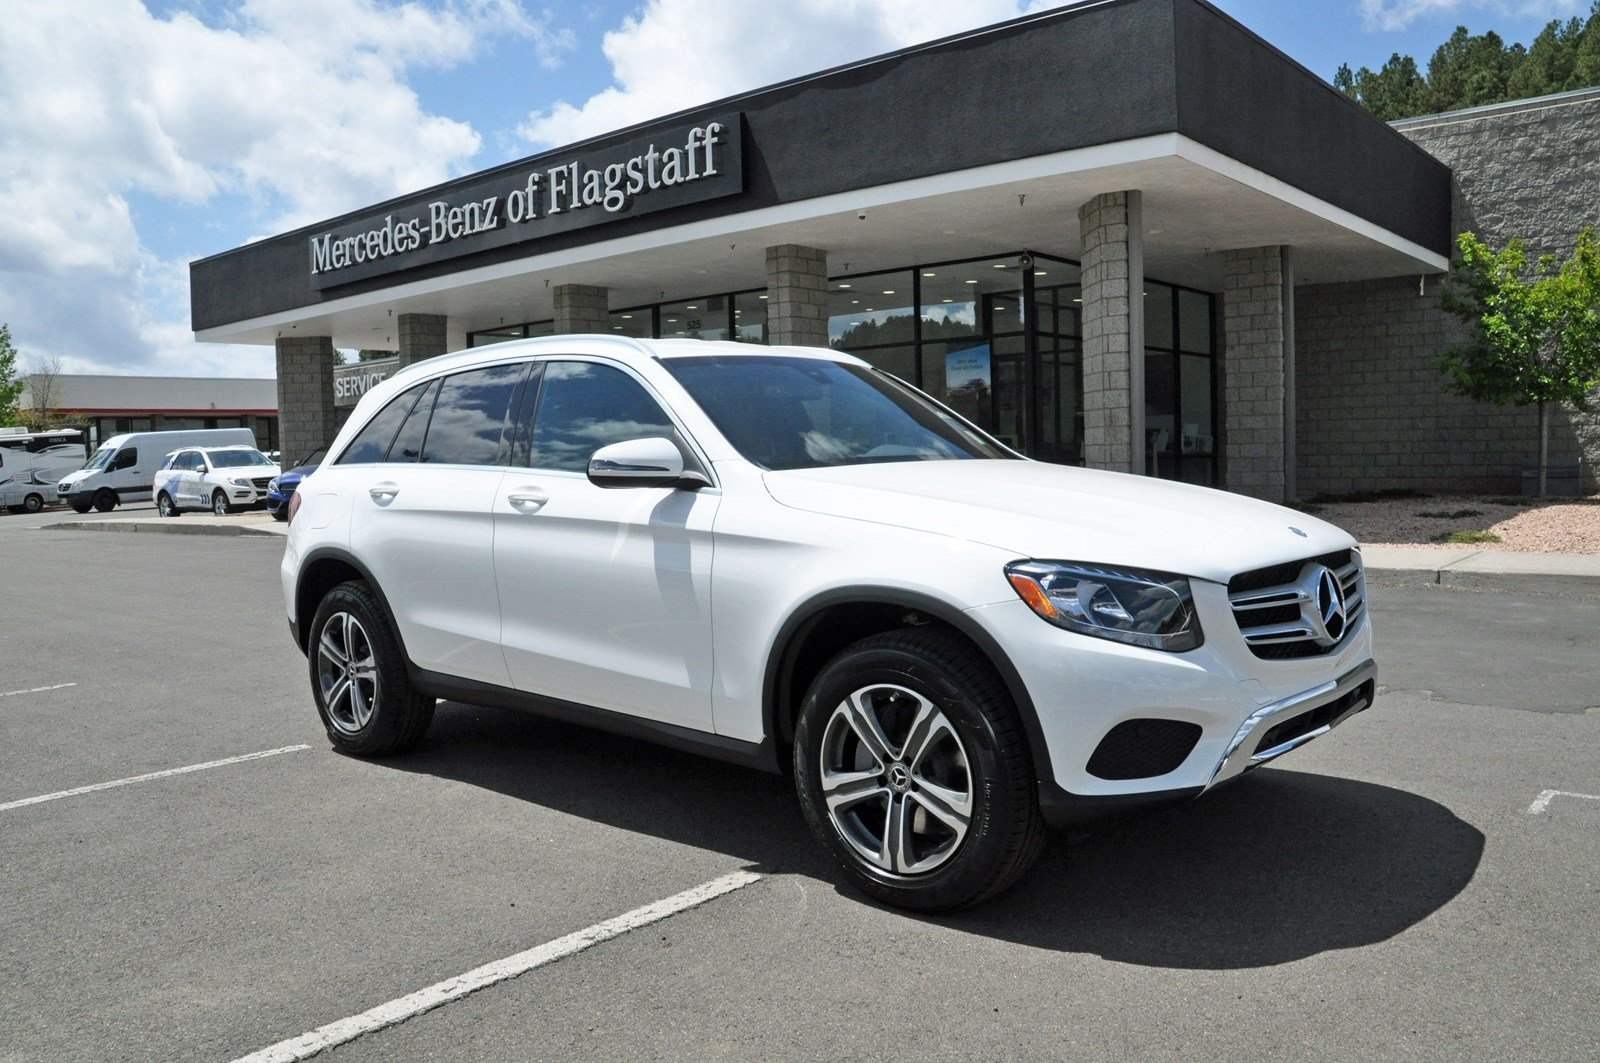 New 2017 mercedes benz glc glc 300 suv in flagstaff for Mercedes benz glc 300 accessories